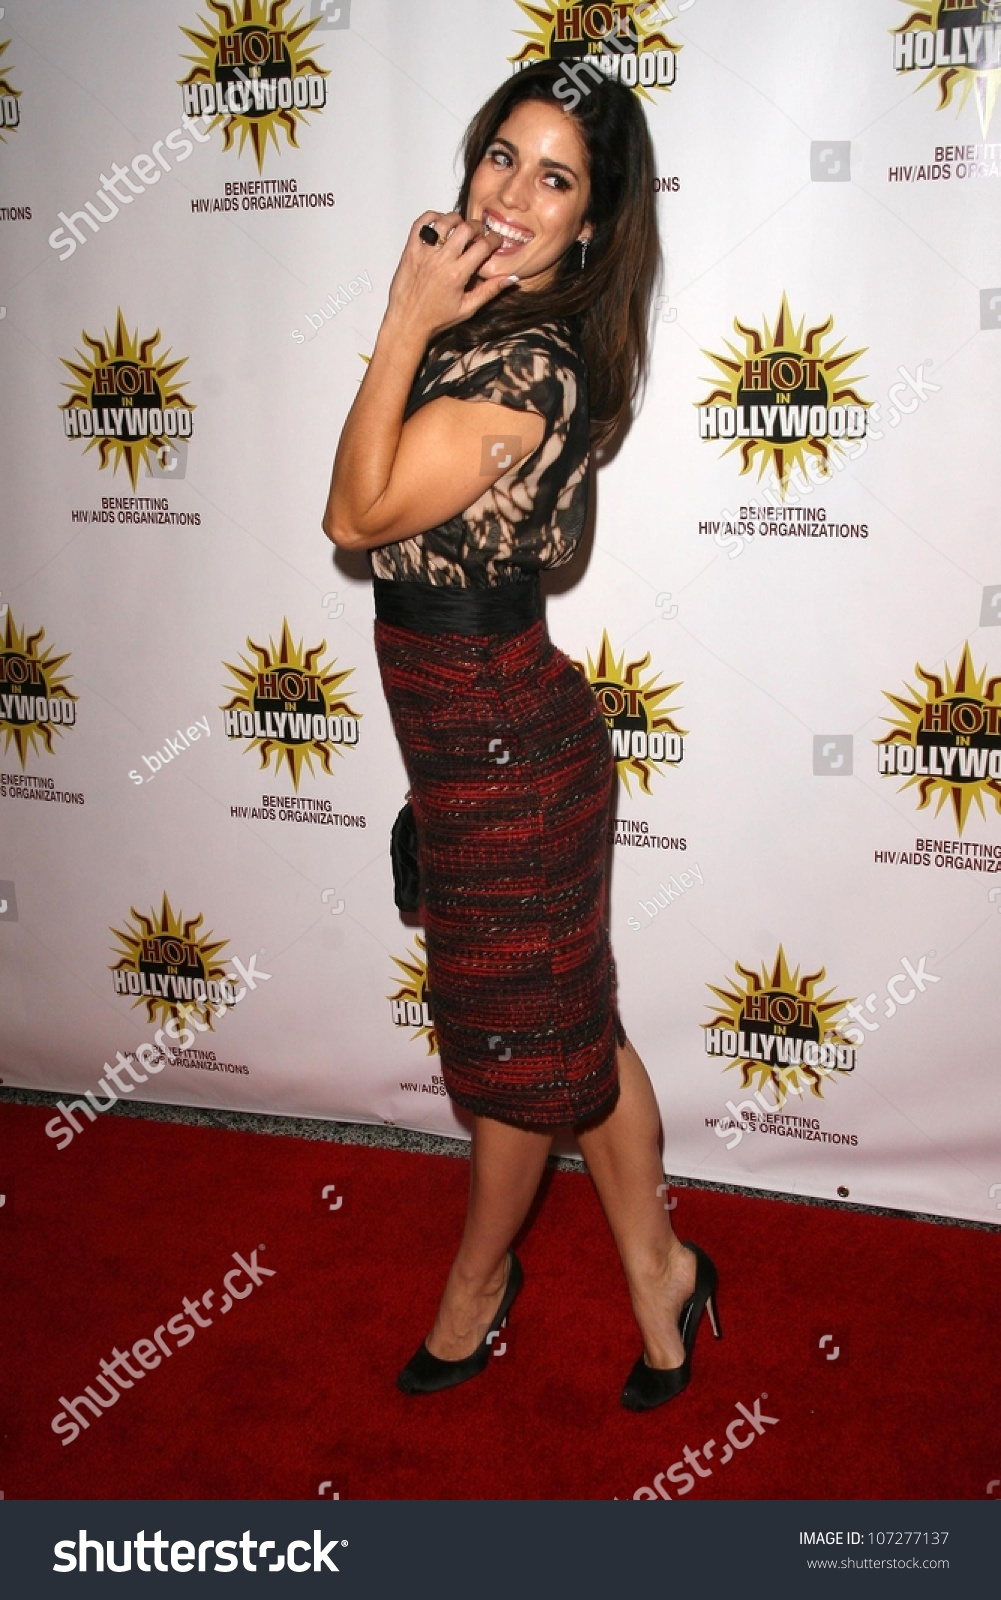 Ana Ortiz Pictures ana ortiz hot hollywood charity event stock photo (edit now